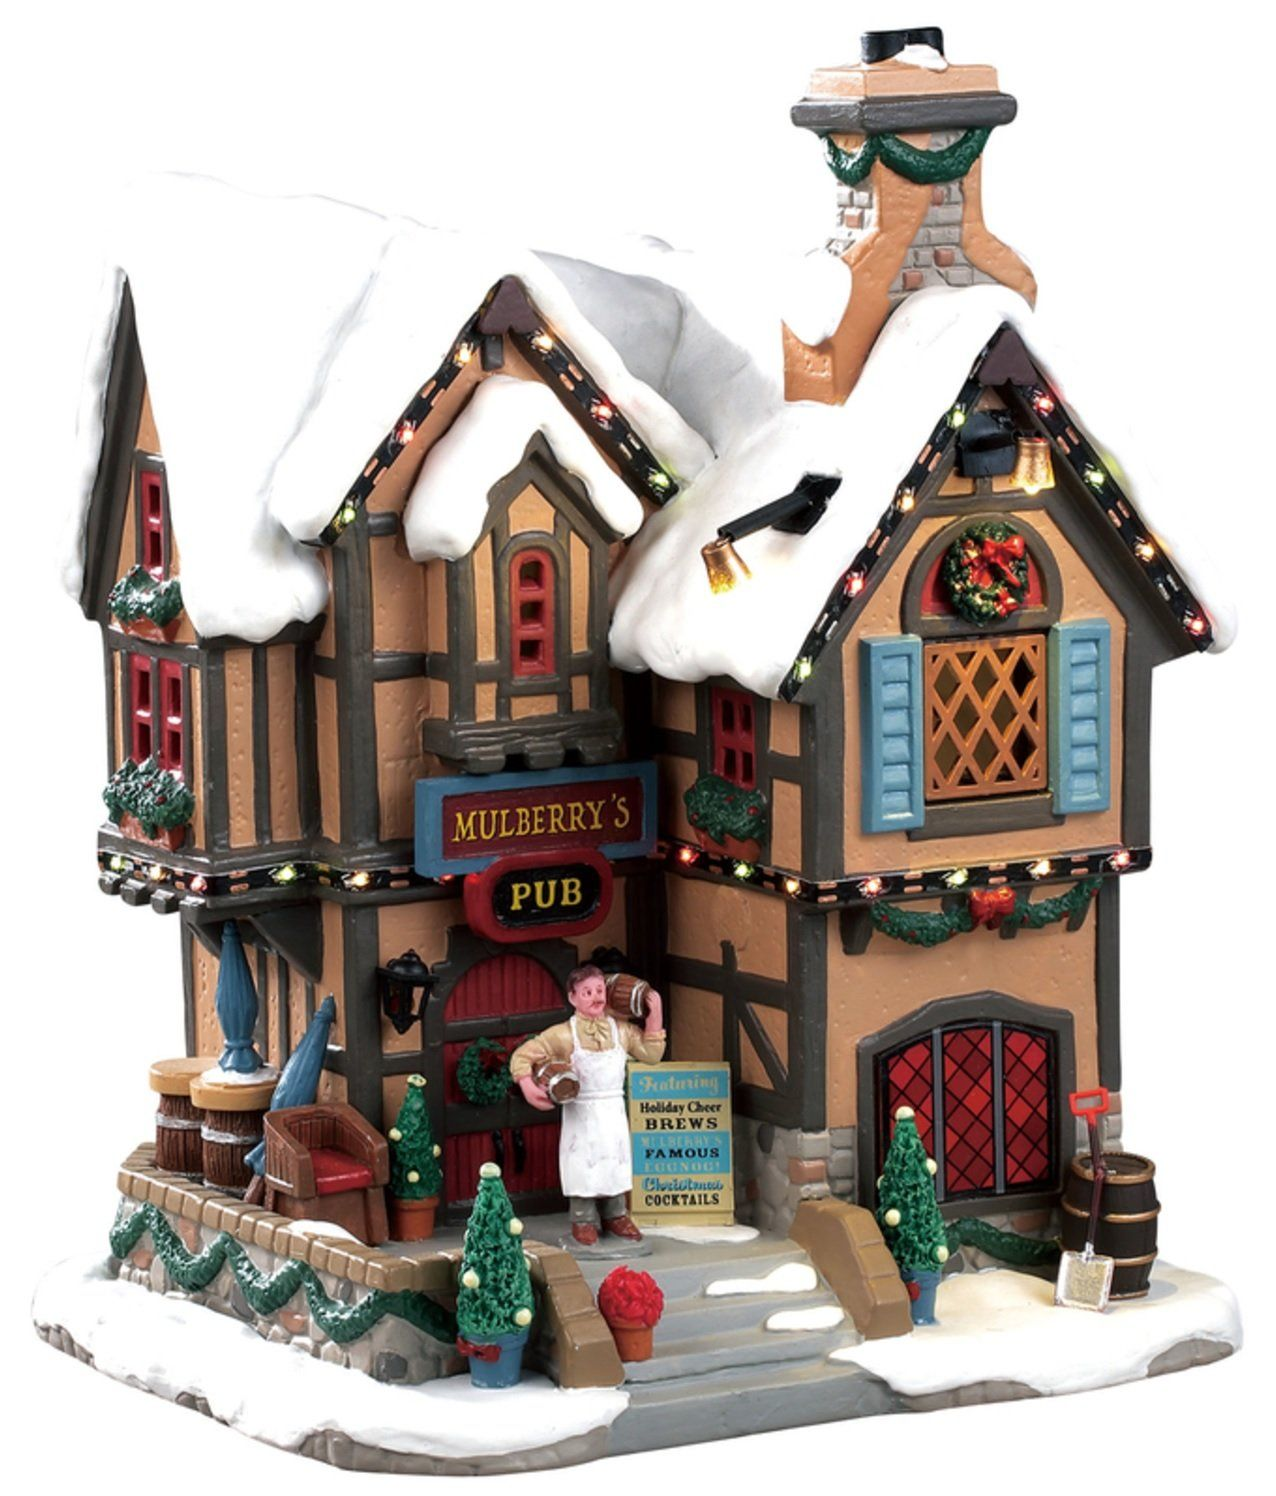 Lemax 2021 Christmas Village House Lemax 95469 Mulberry S Pub Christmas Village Building Multicolored In 2021 Lemax Christmas Village Lemax Christmas Christmas Village Houses